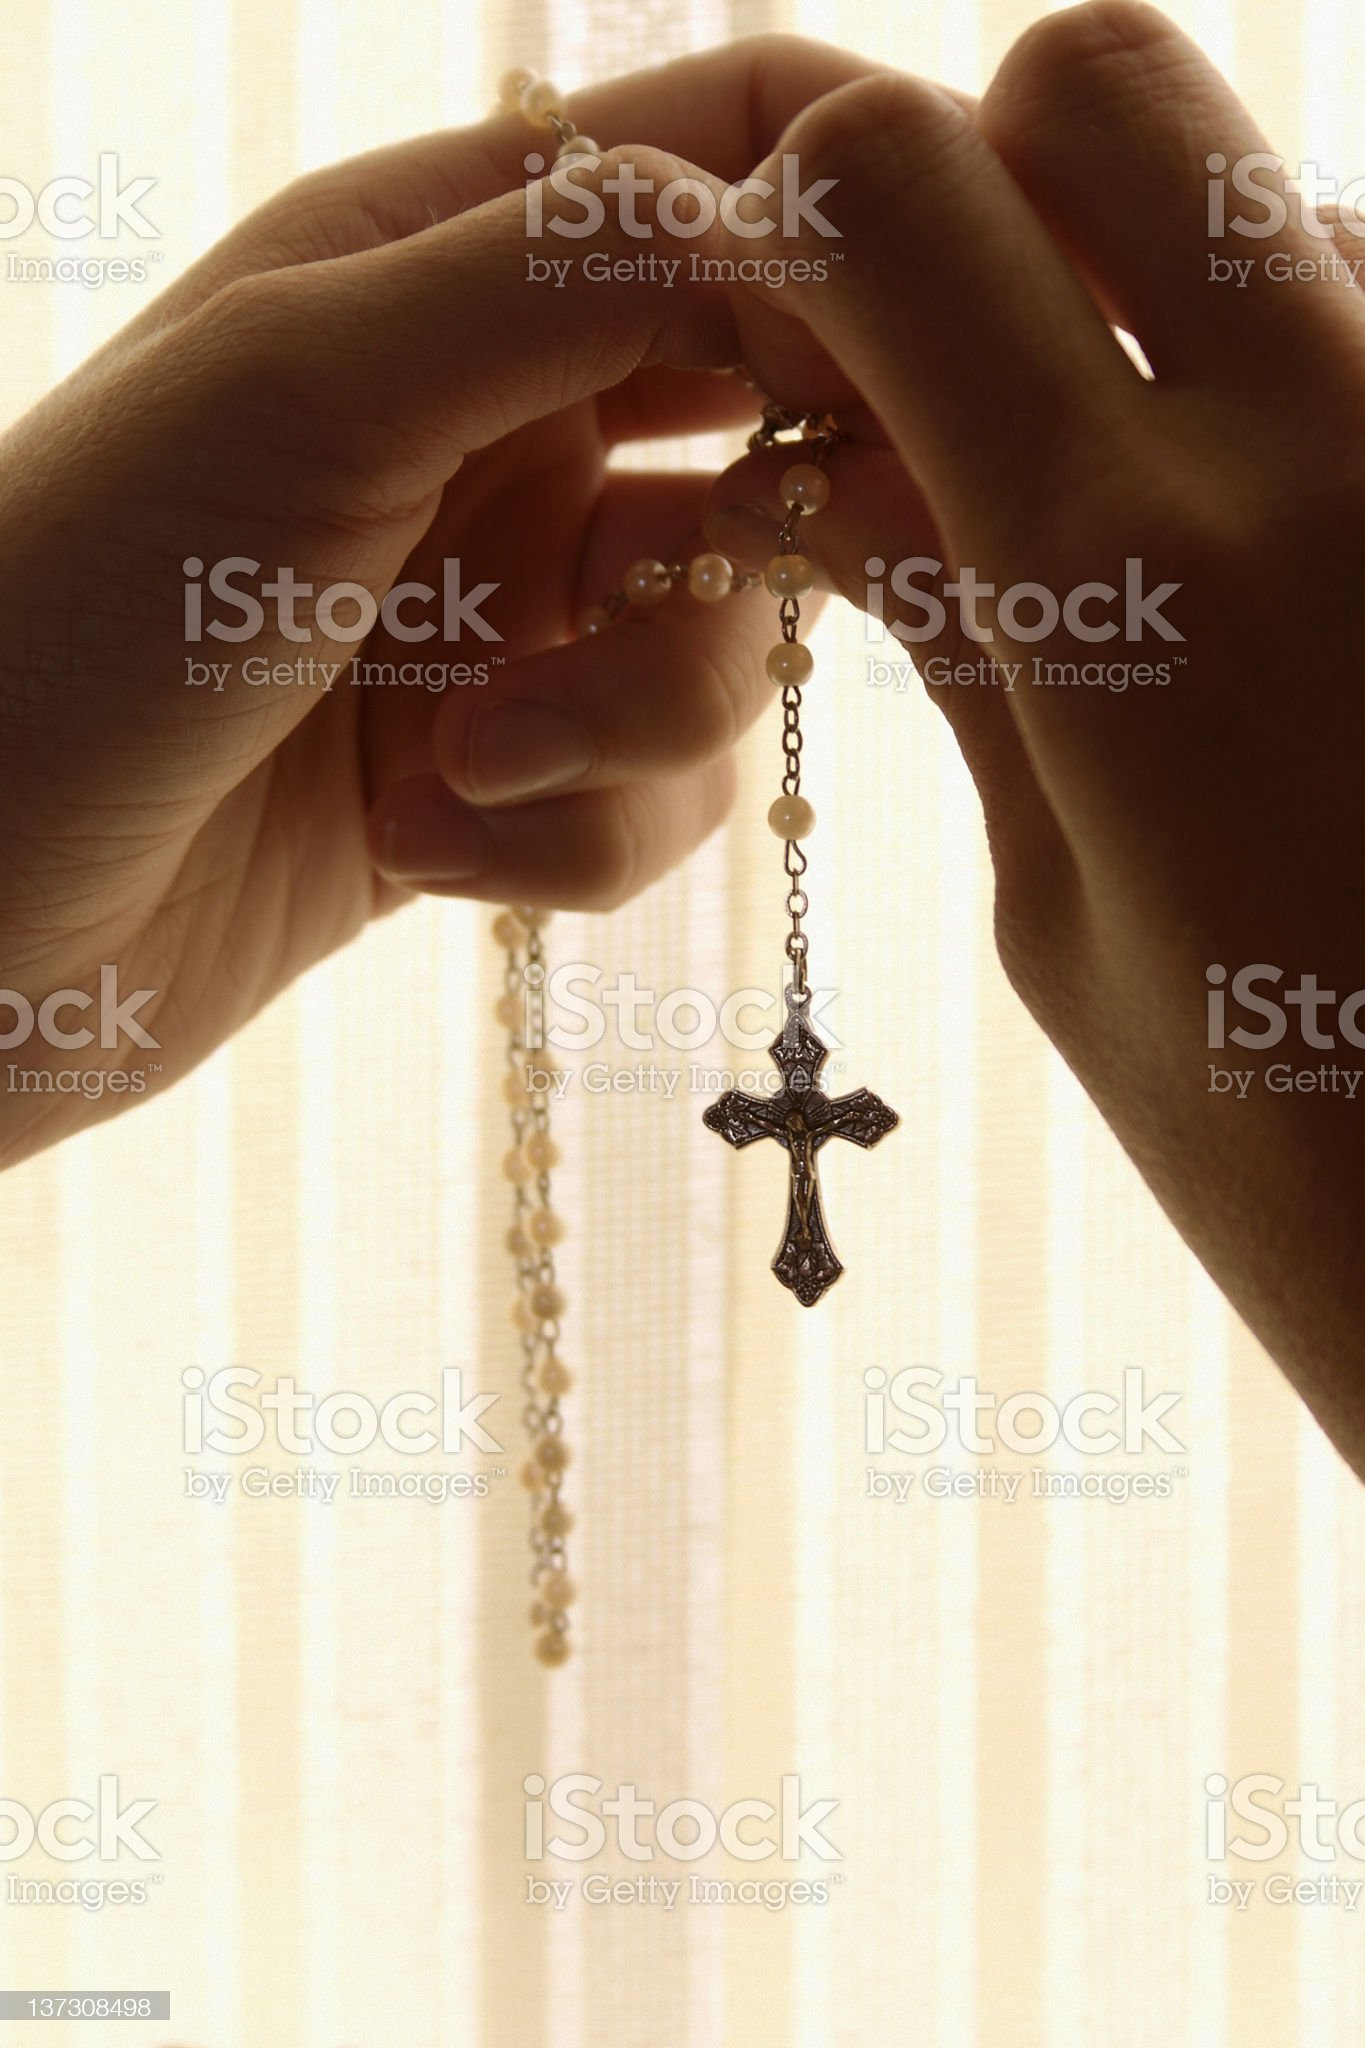 Hands Holding Rosary in Confessional Booth royalty-free stock photo